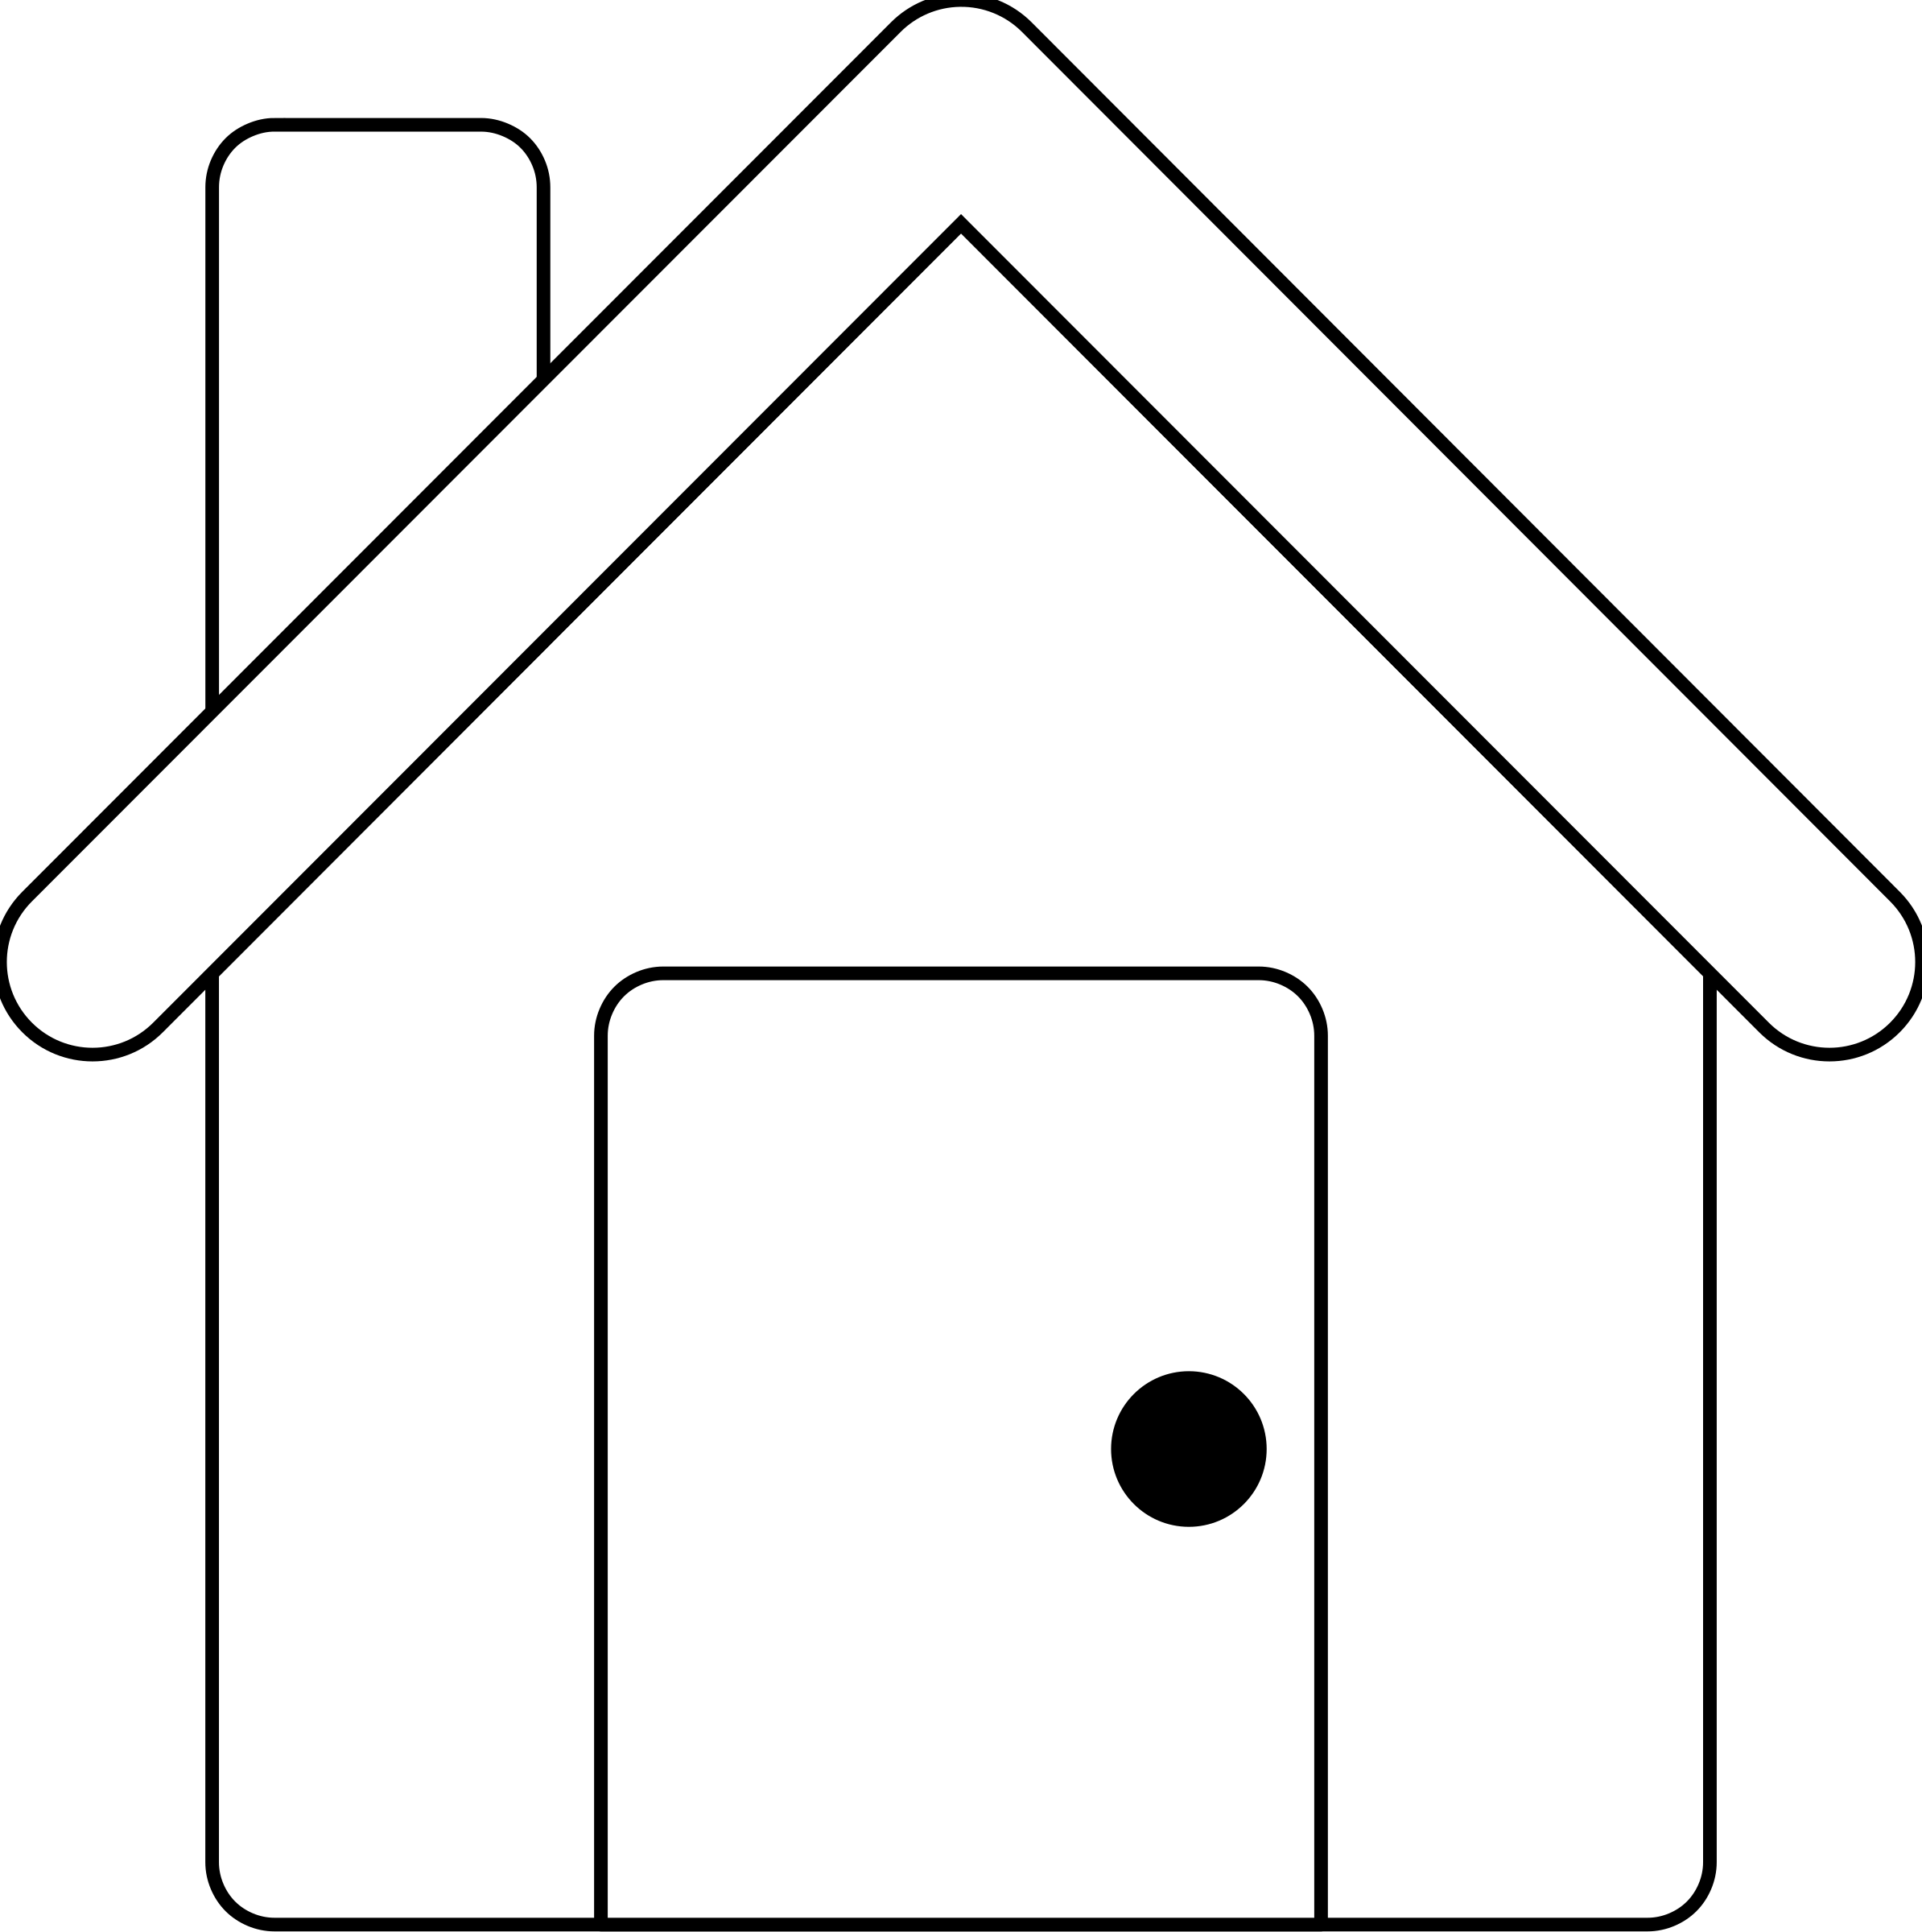 Line Art House Png : Clipart house line art